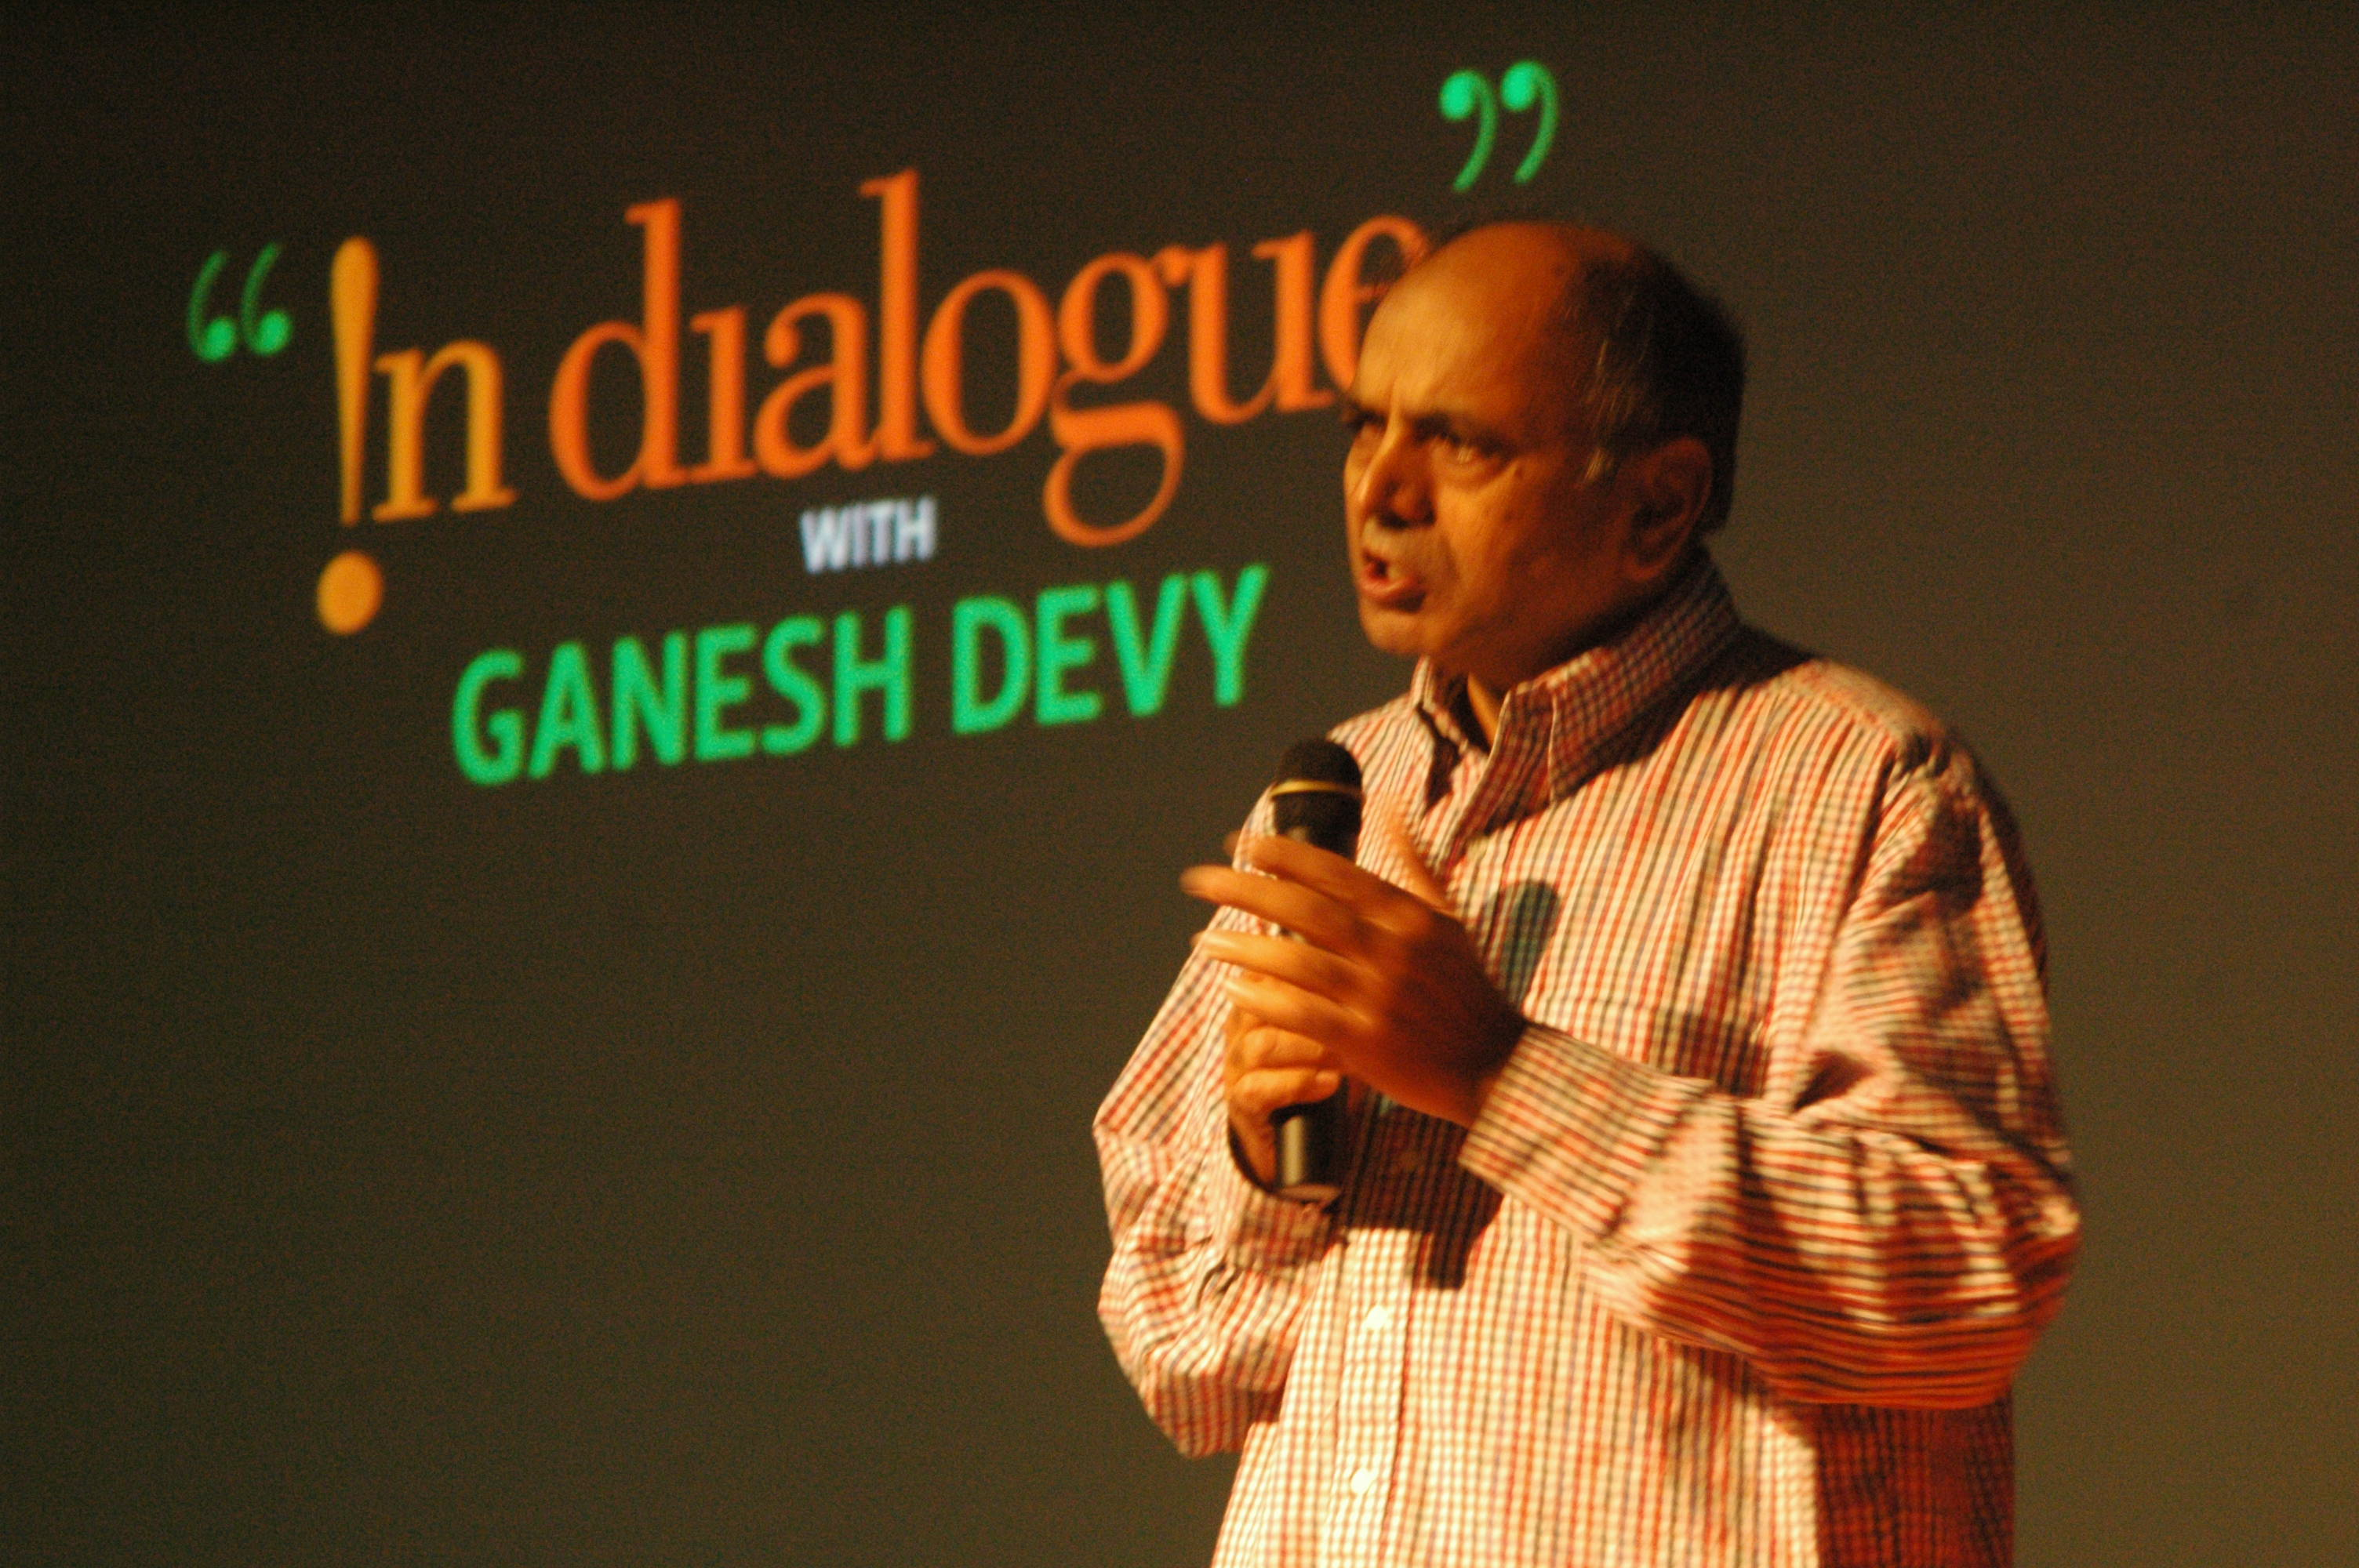 Ganesh Devy : literary critic and activist working for tribal welfare